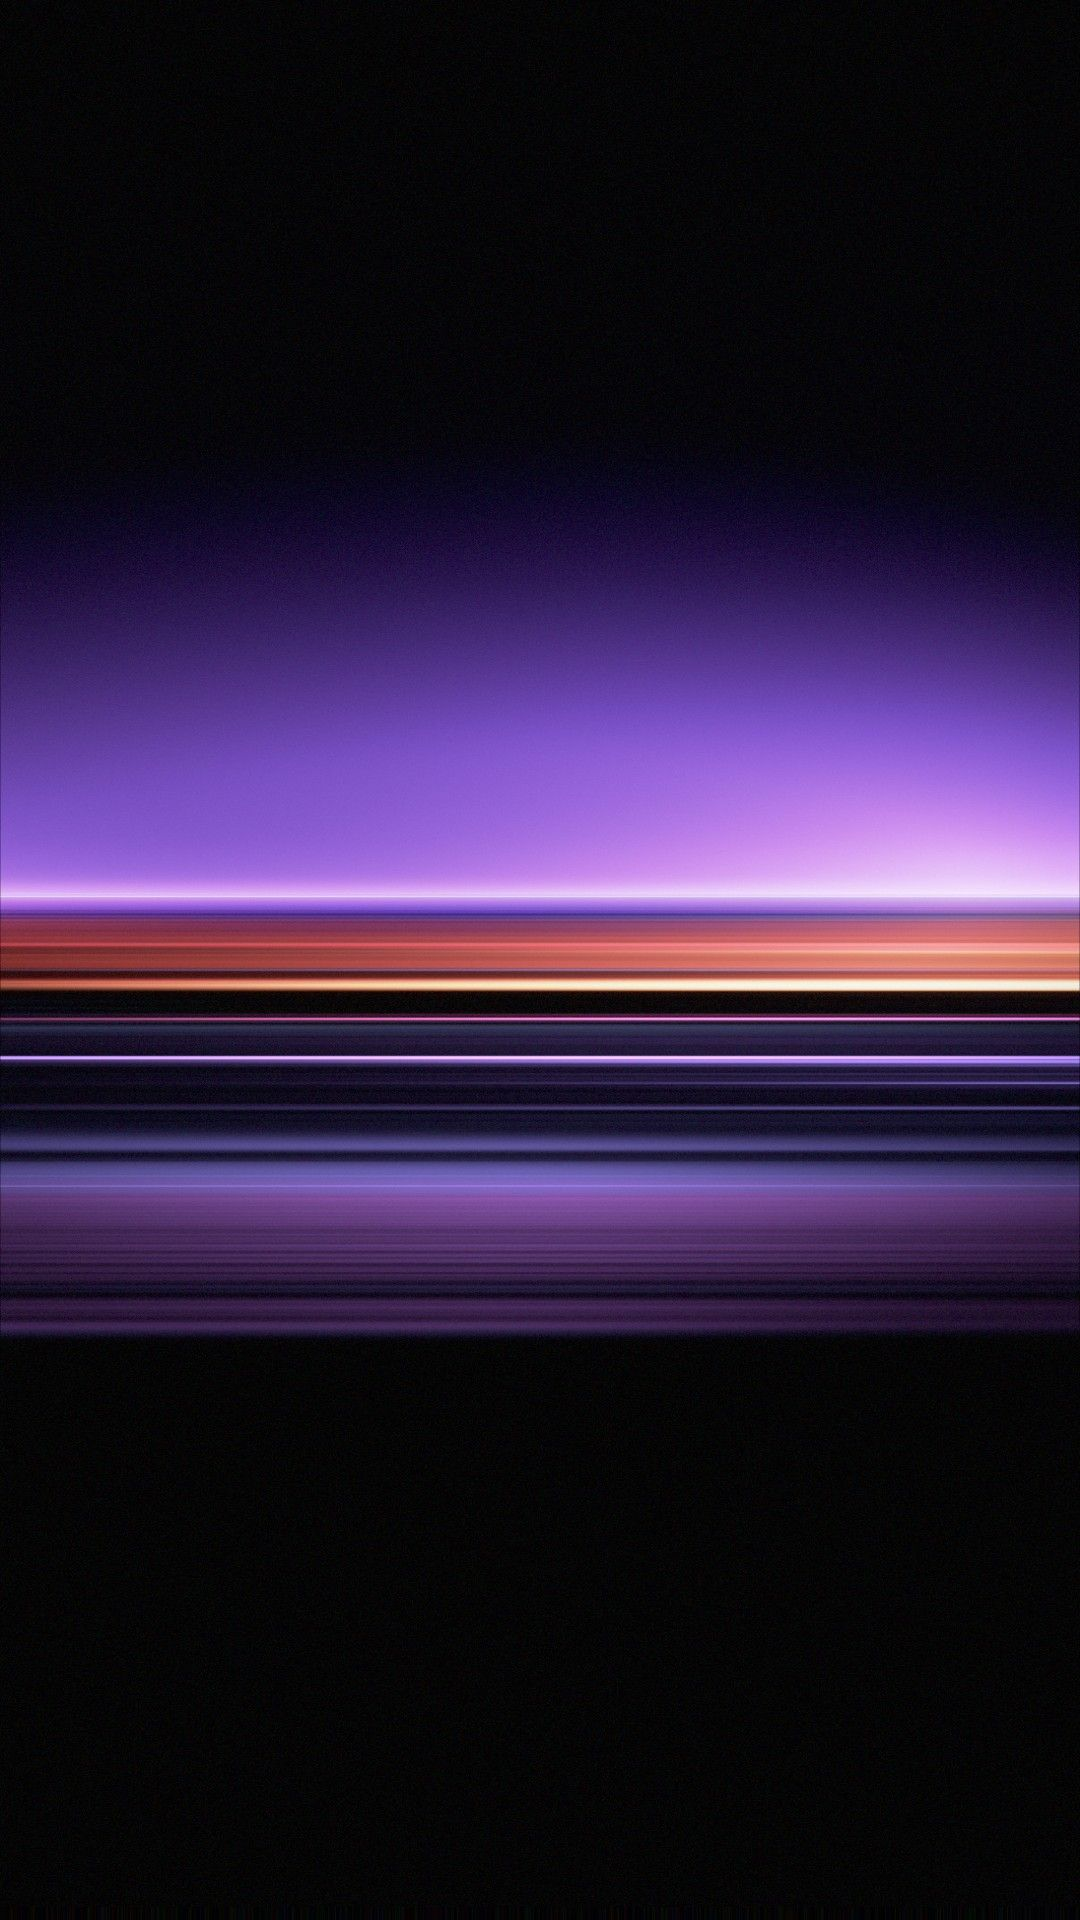 Sony Xperia Ace Wallpaper Ytechb Exclusive Xperia Wallpaper Stock Wallpaper Dark Background Wallpaper Download wallpaper sony xperia full hd